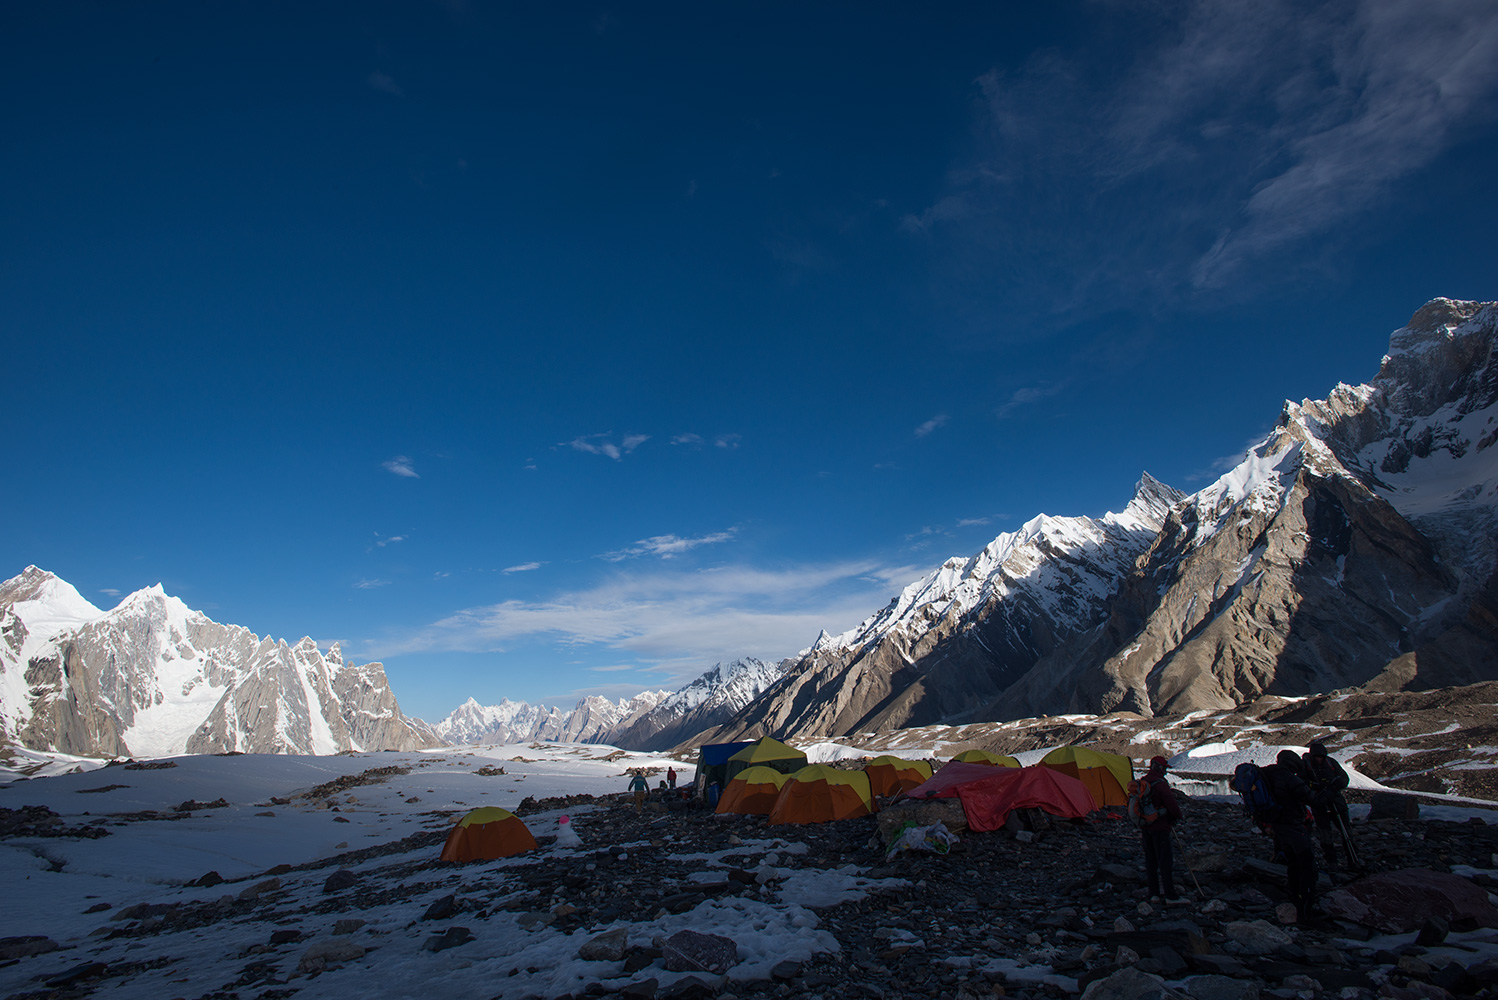 As the afternoon shadows engulf the camp, temperatures plummet. A view down valley to Paiju Peak and the Trangos etc